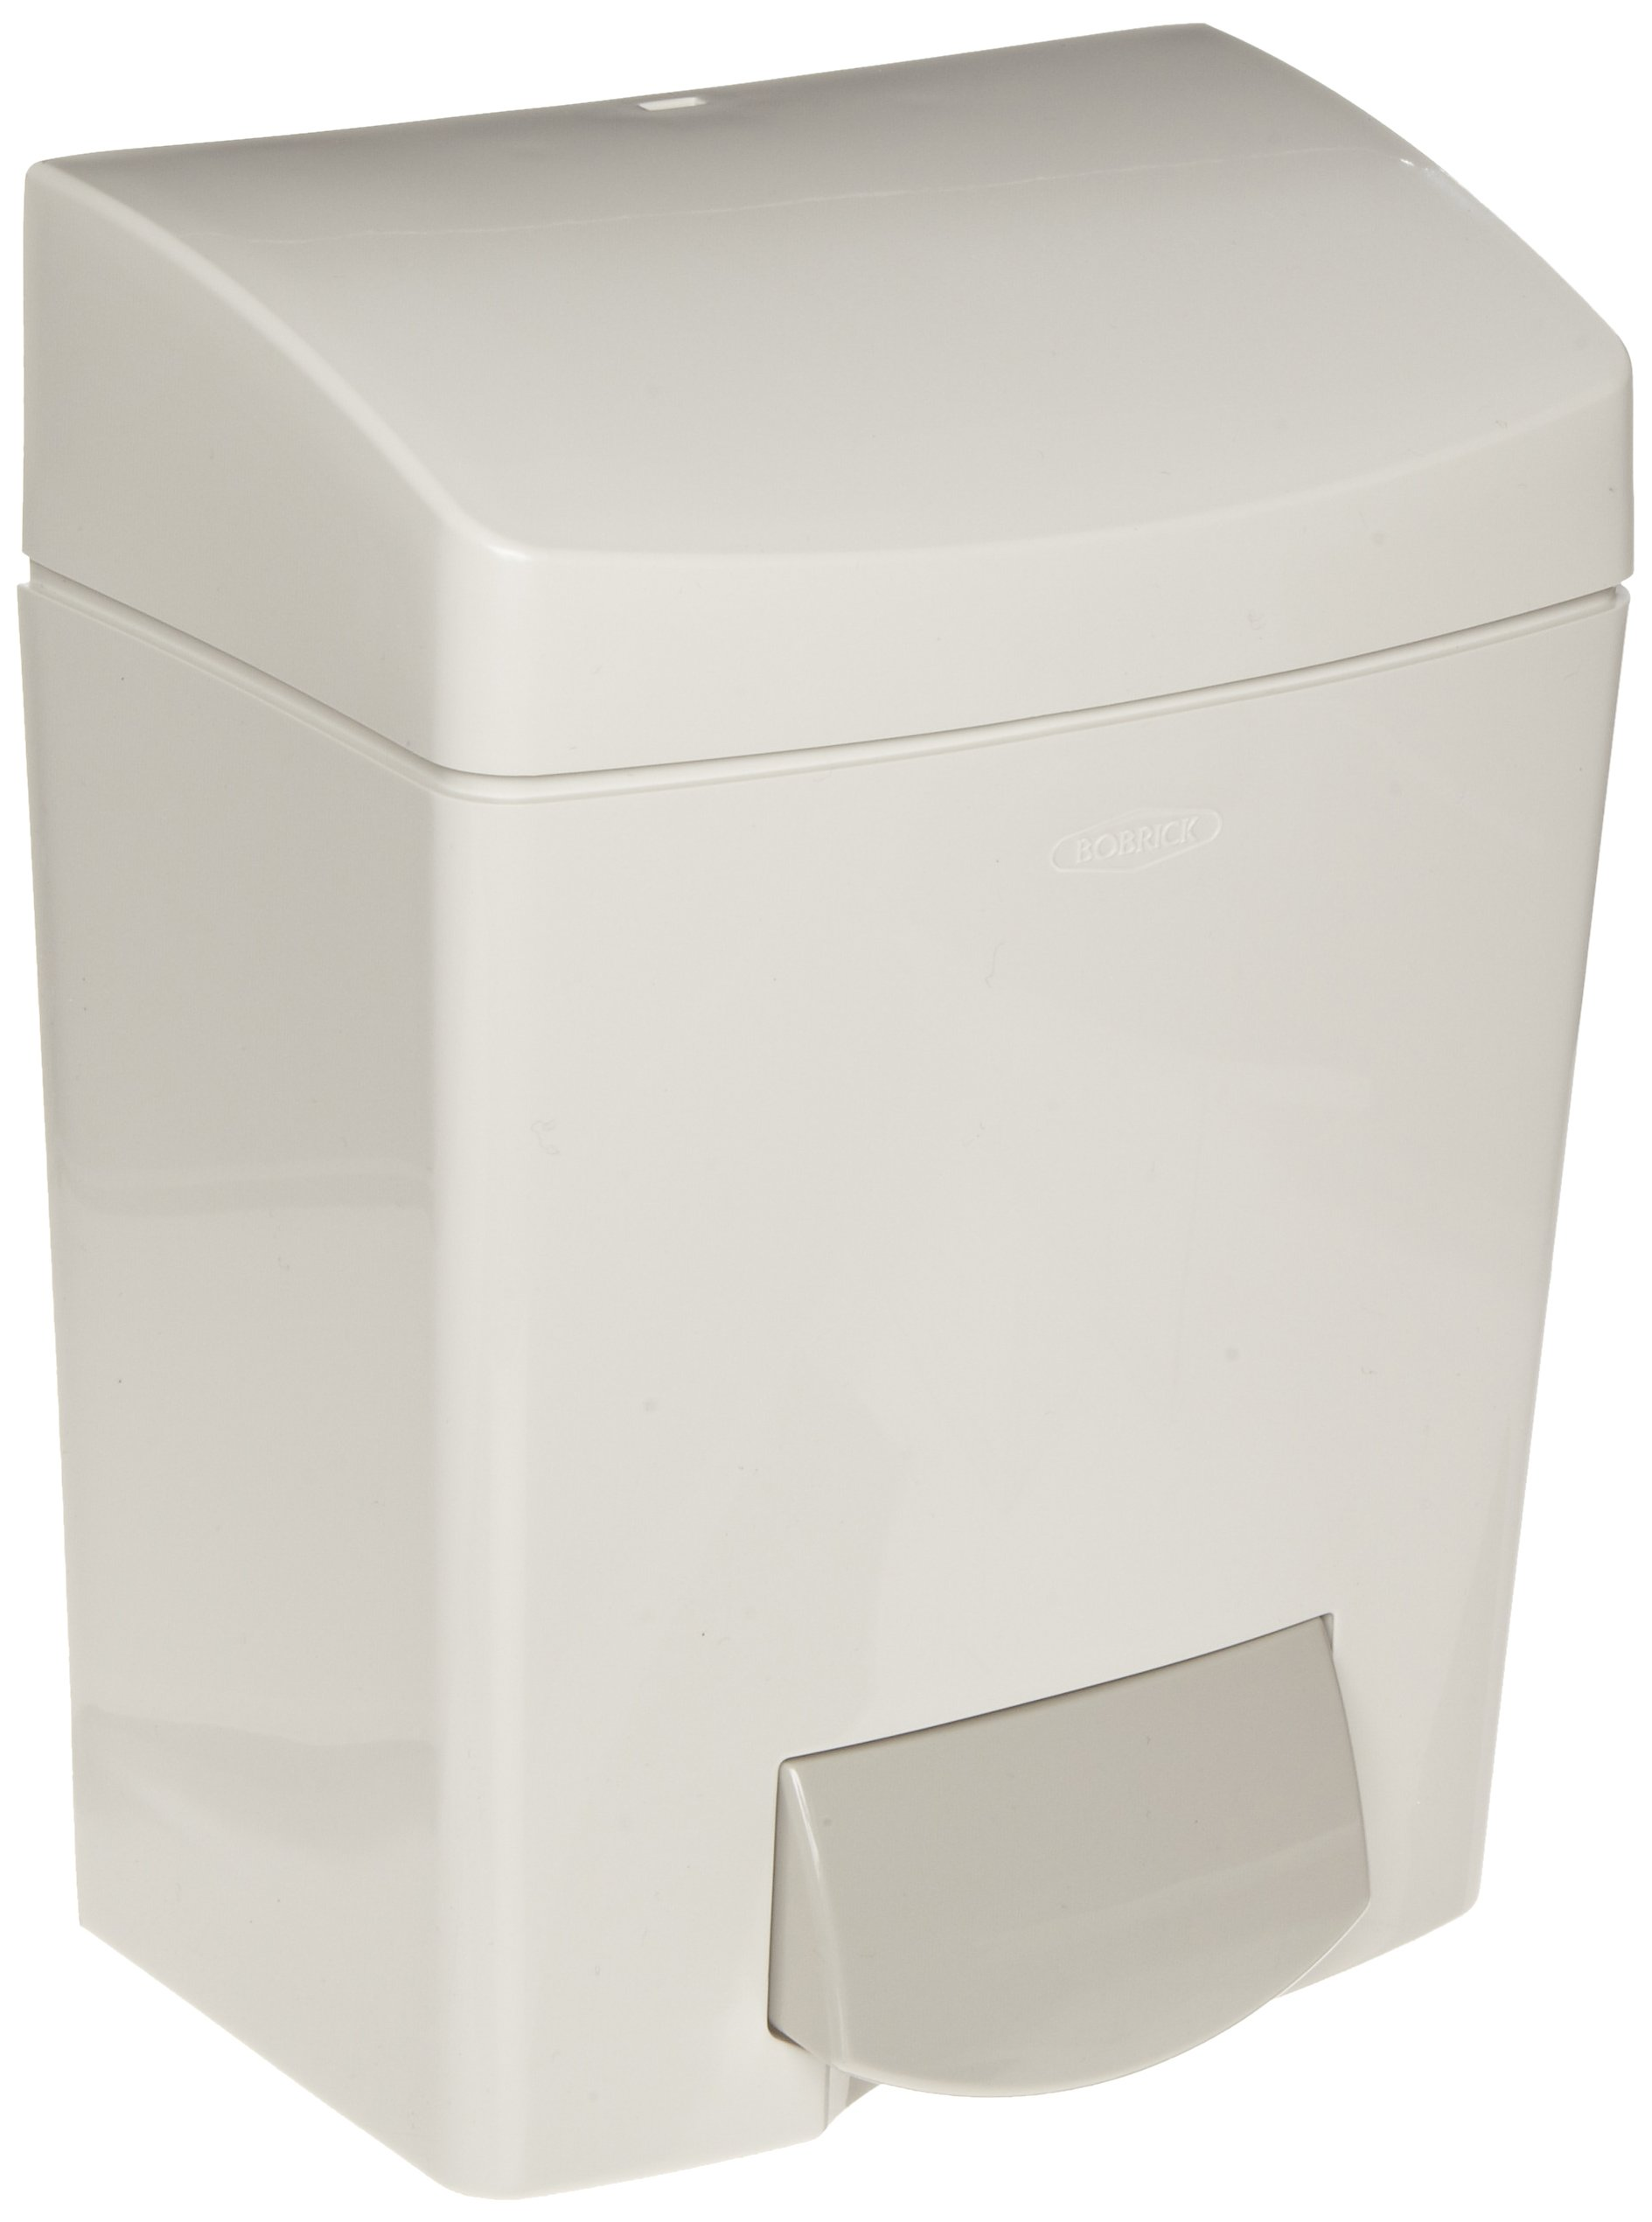 Bobrick B-5050 50 fl oz Matrix Series Surface-Mounted Soap Dispenser